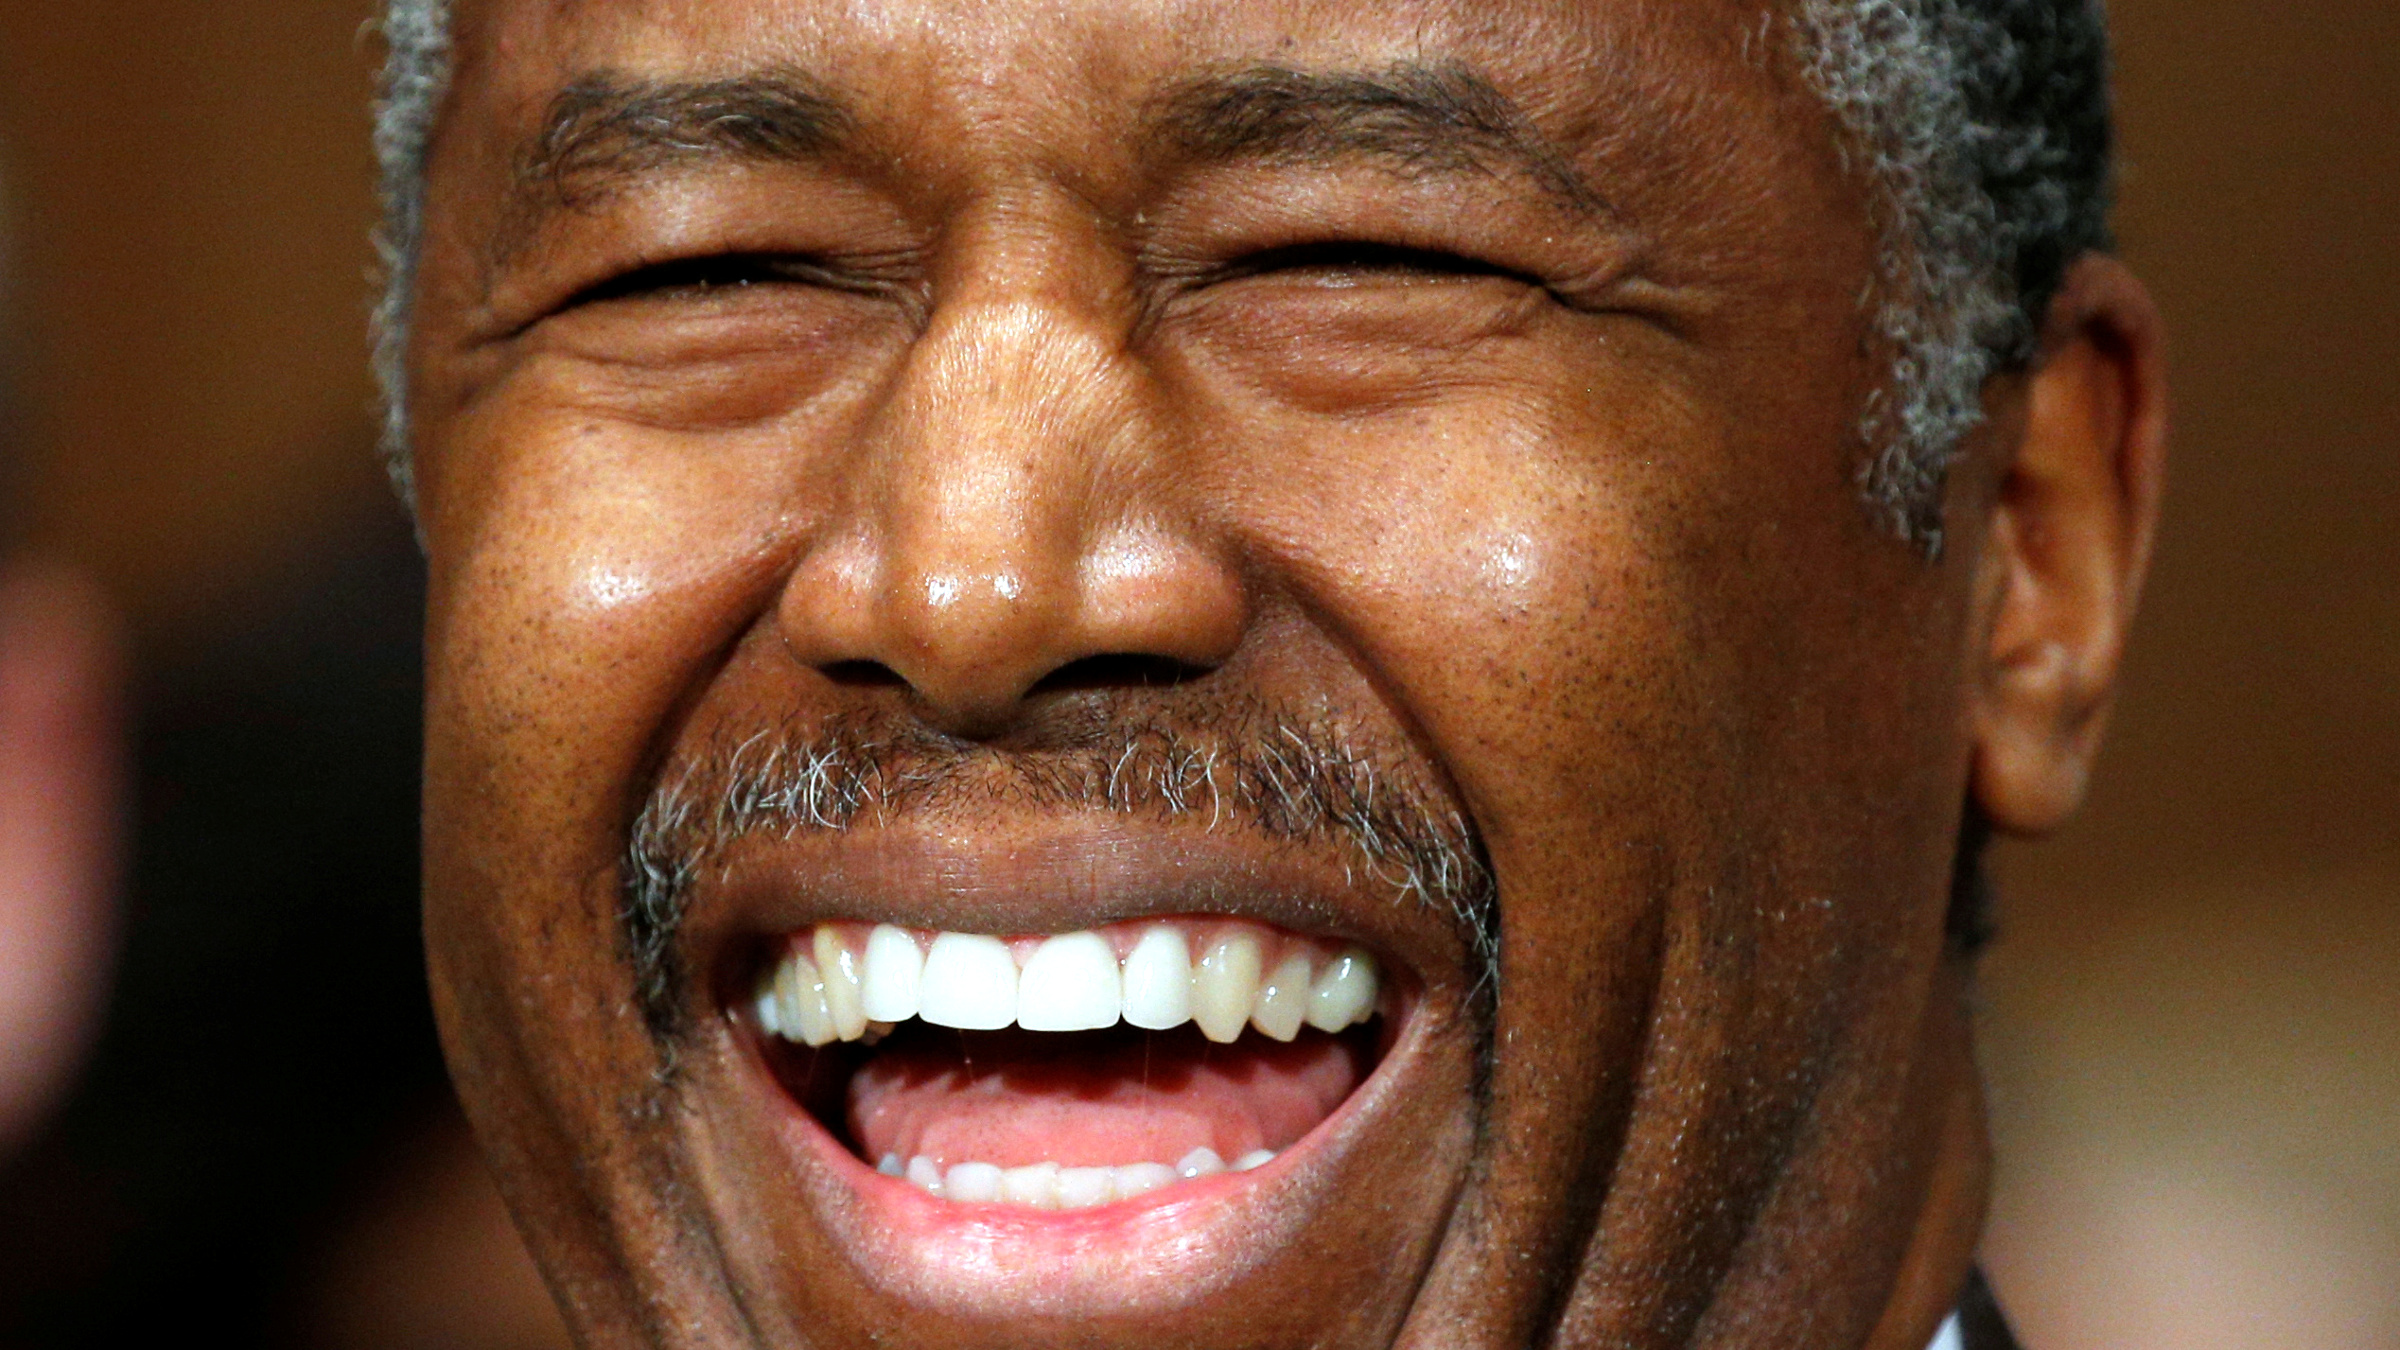 Dr. Ben Carson smiles as he testifies before a Senate Banking, Housing and Urban Affairs Committee confirmation hearing on his nomination to be Secretary of the U.S. Department of Housing and Urban Development on Capitol Hill in Washington, U.S. January 12, 2017.